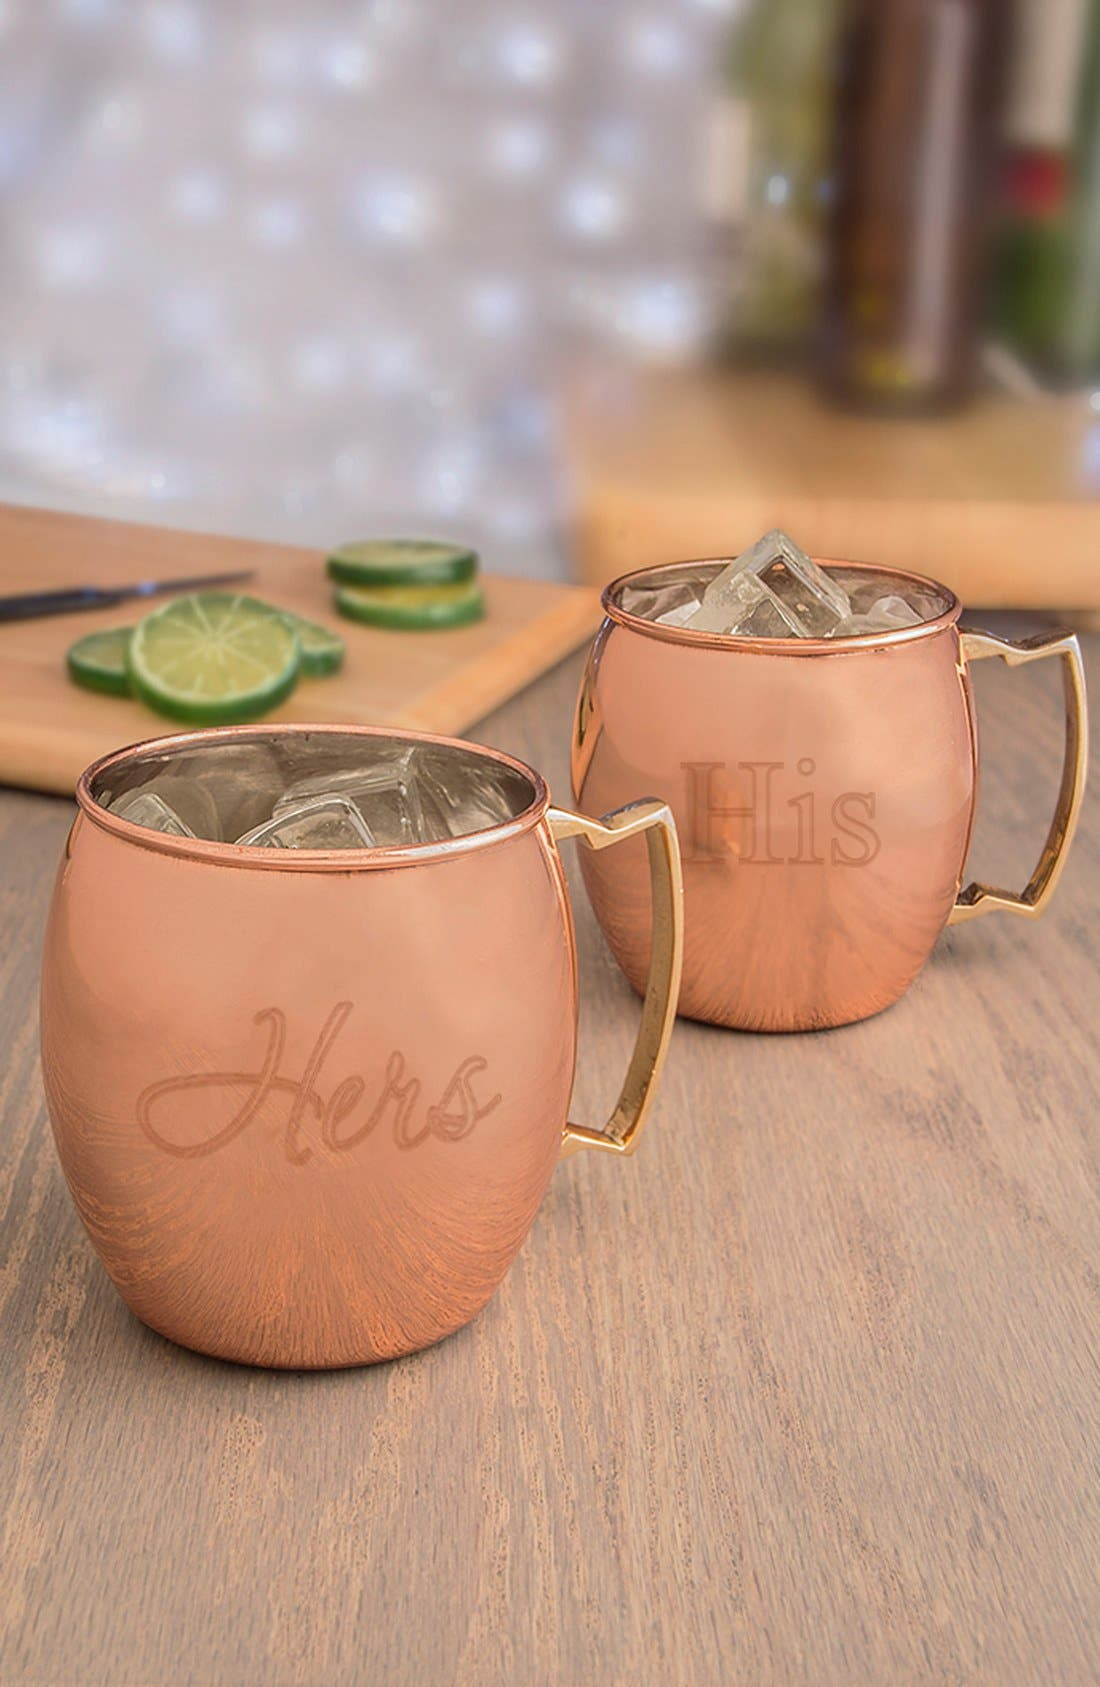 """Cathy's Concepts """"For the Couple"""" Moscow Mule Copper Mug Set (Set of 2)"""